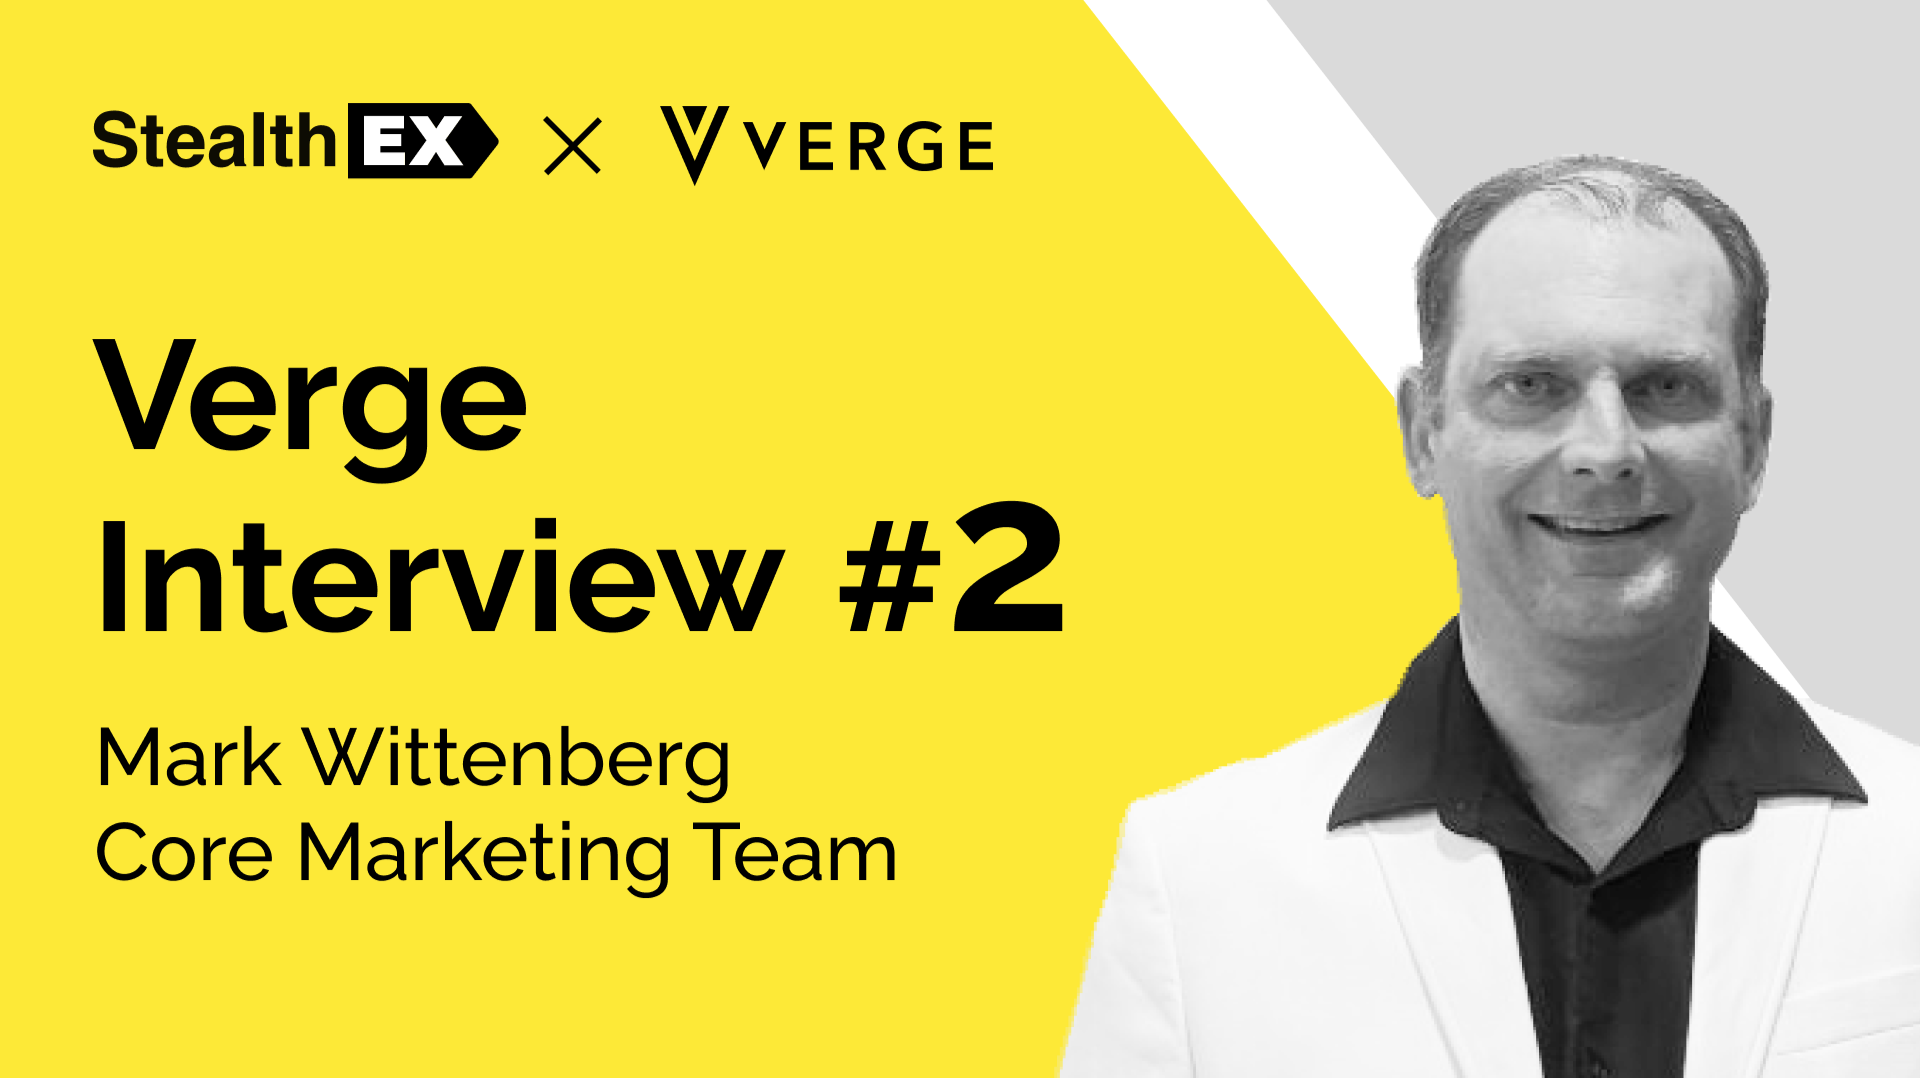 StealthEX Interview With Mark Wittenberg, The Verge Currency Core Marketing Team